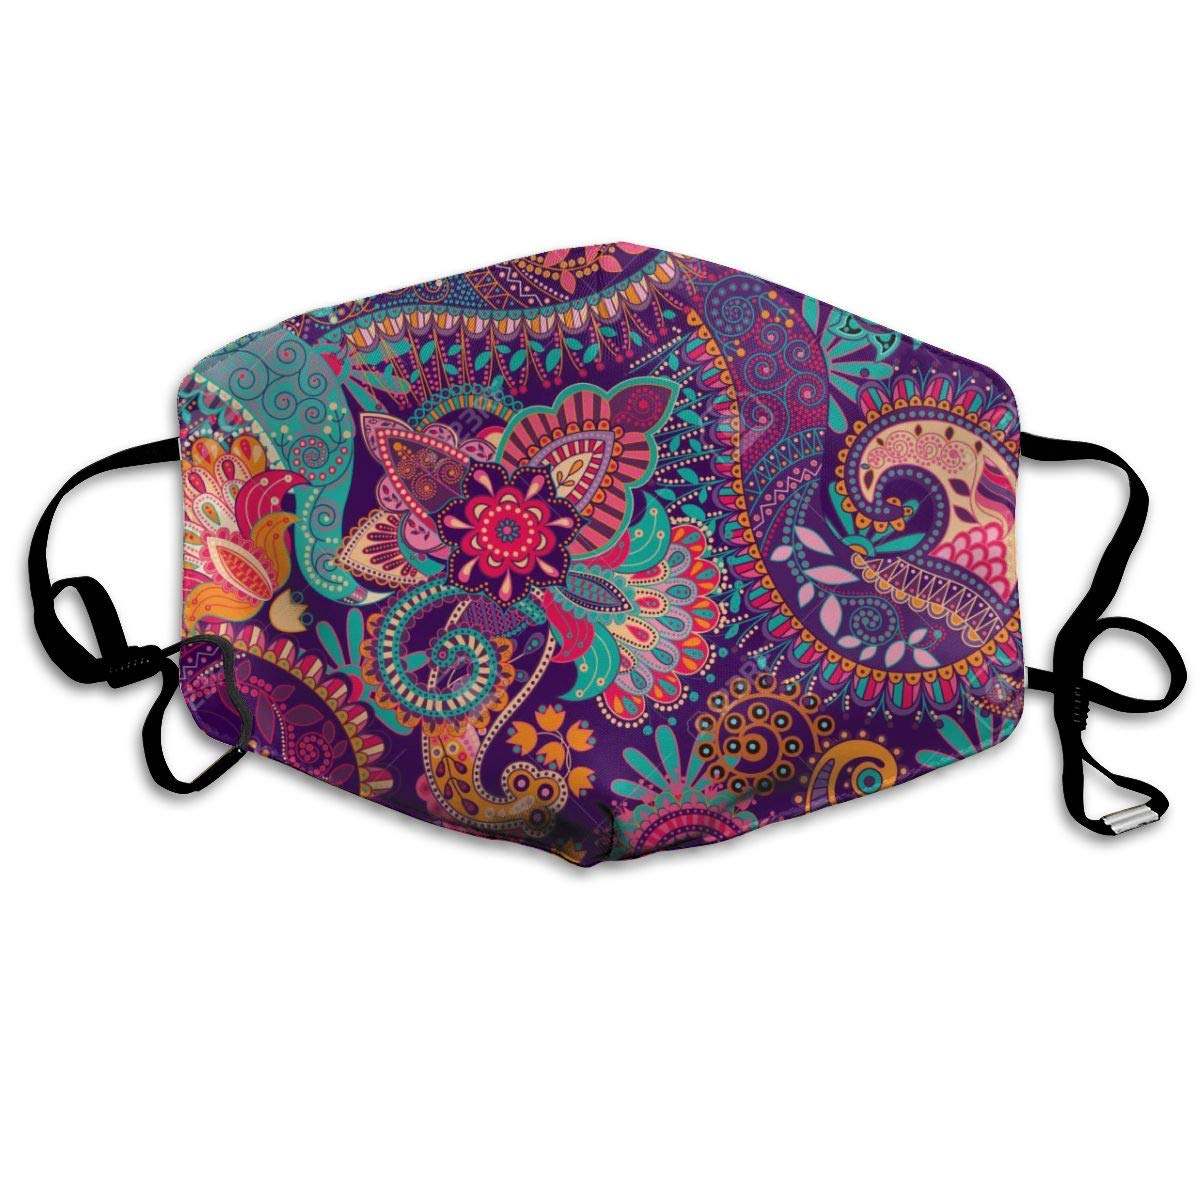 Mouth Mask Purple Floral Mandala Print Masks - Breathable Adjustable Windproof Mouth-Muffle, Camping Running For Women And Men